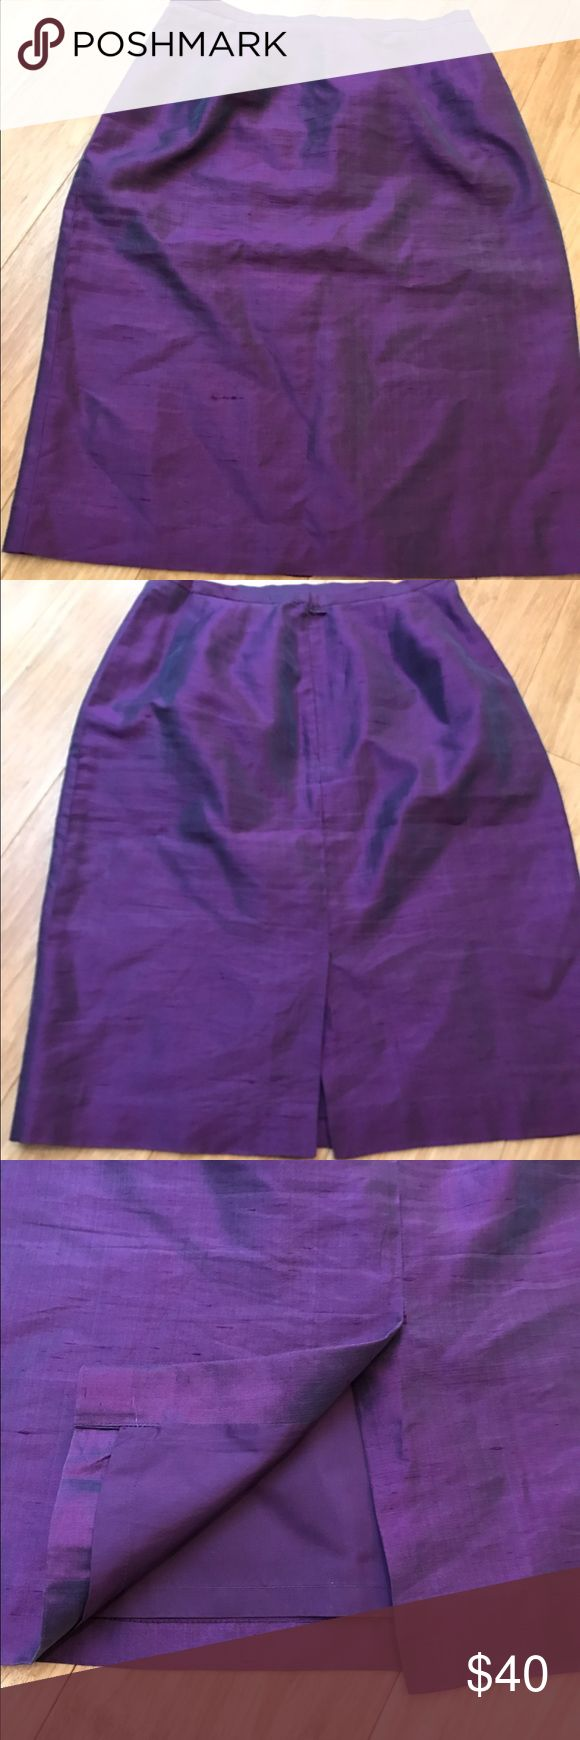 Kay unger  New York pencil skirt Kay unger  New York pencil skirt in shimmering purple. 100% silk. Measurements in picture Kay Unger Skirts Pencil